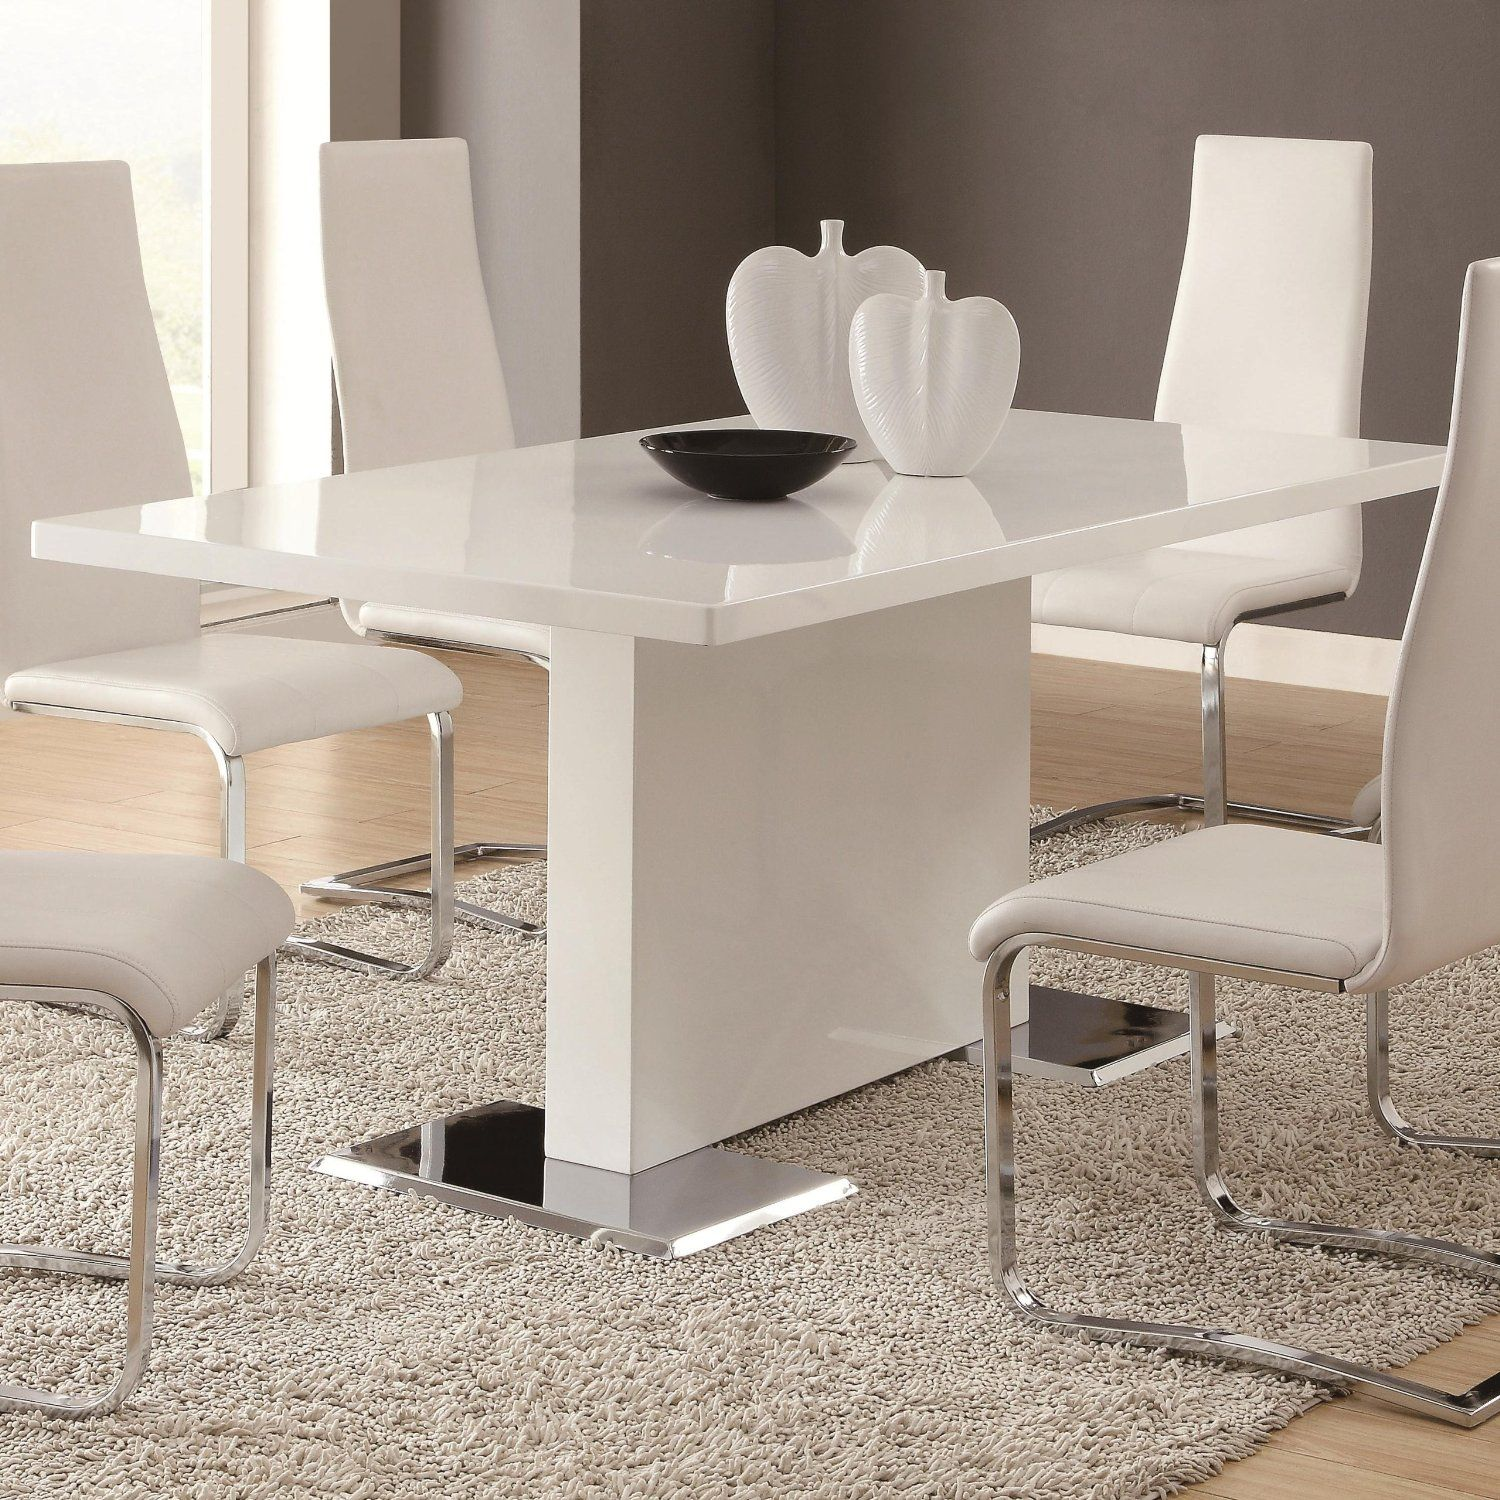 dining tables on amazon contemporary kitchen tables Dining tables on amazon Amazon Com Glossy White Contemporary Dining Table Modern Coaster Dining Table